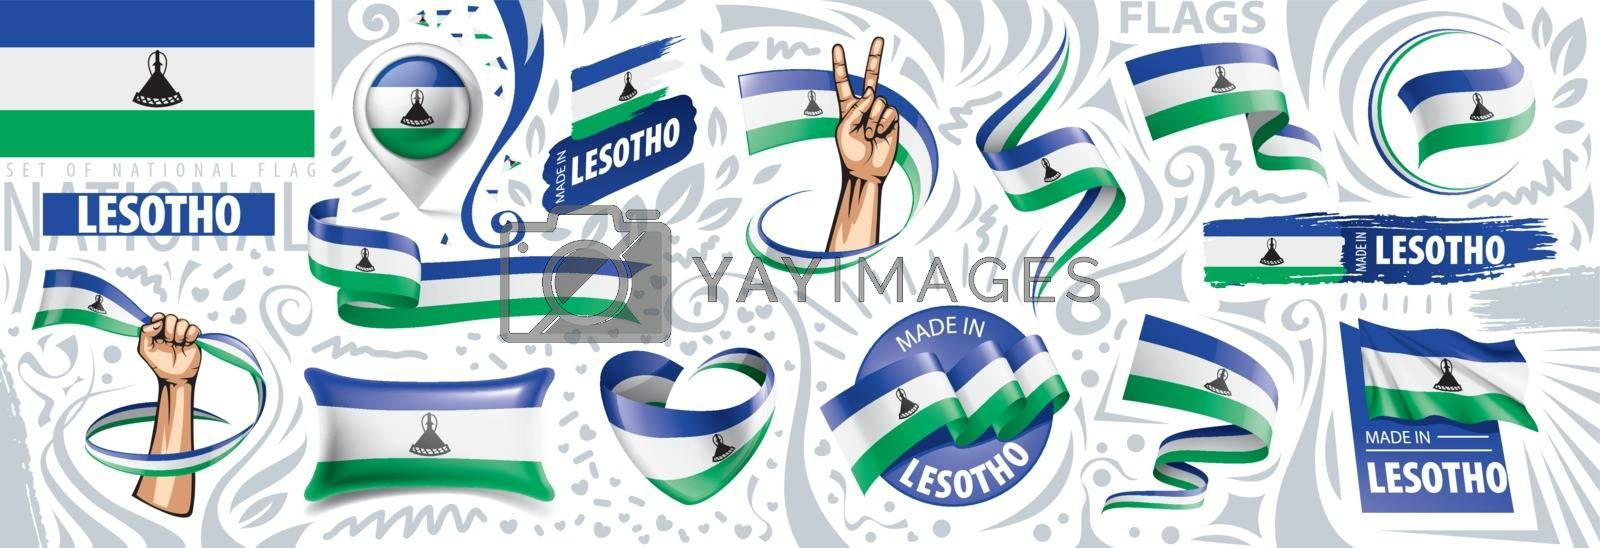 Vector set of the national flag of Lesotho in various creative designs.